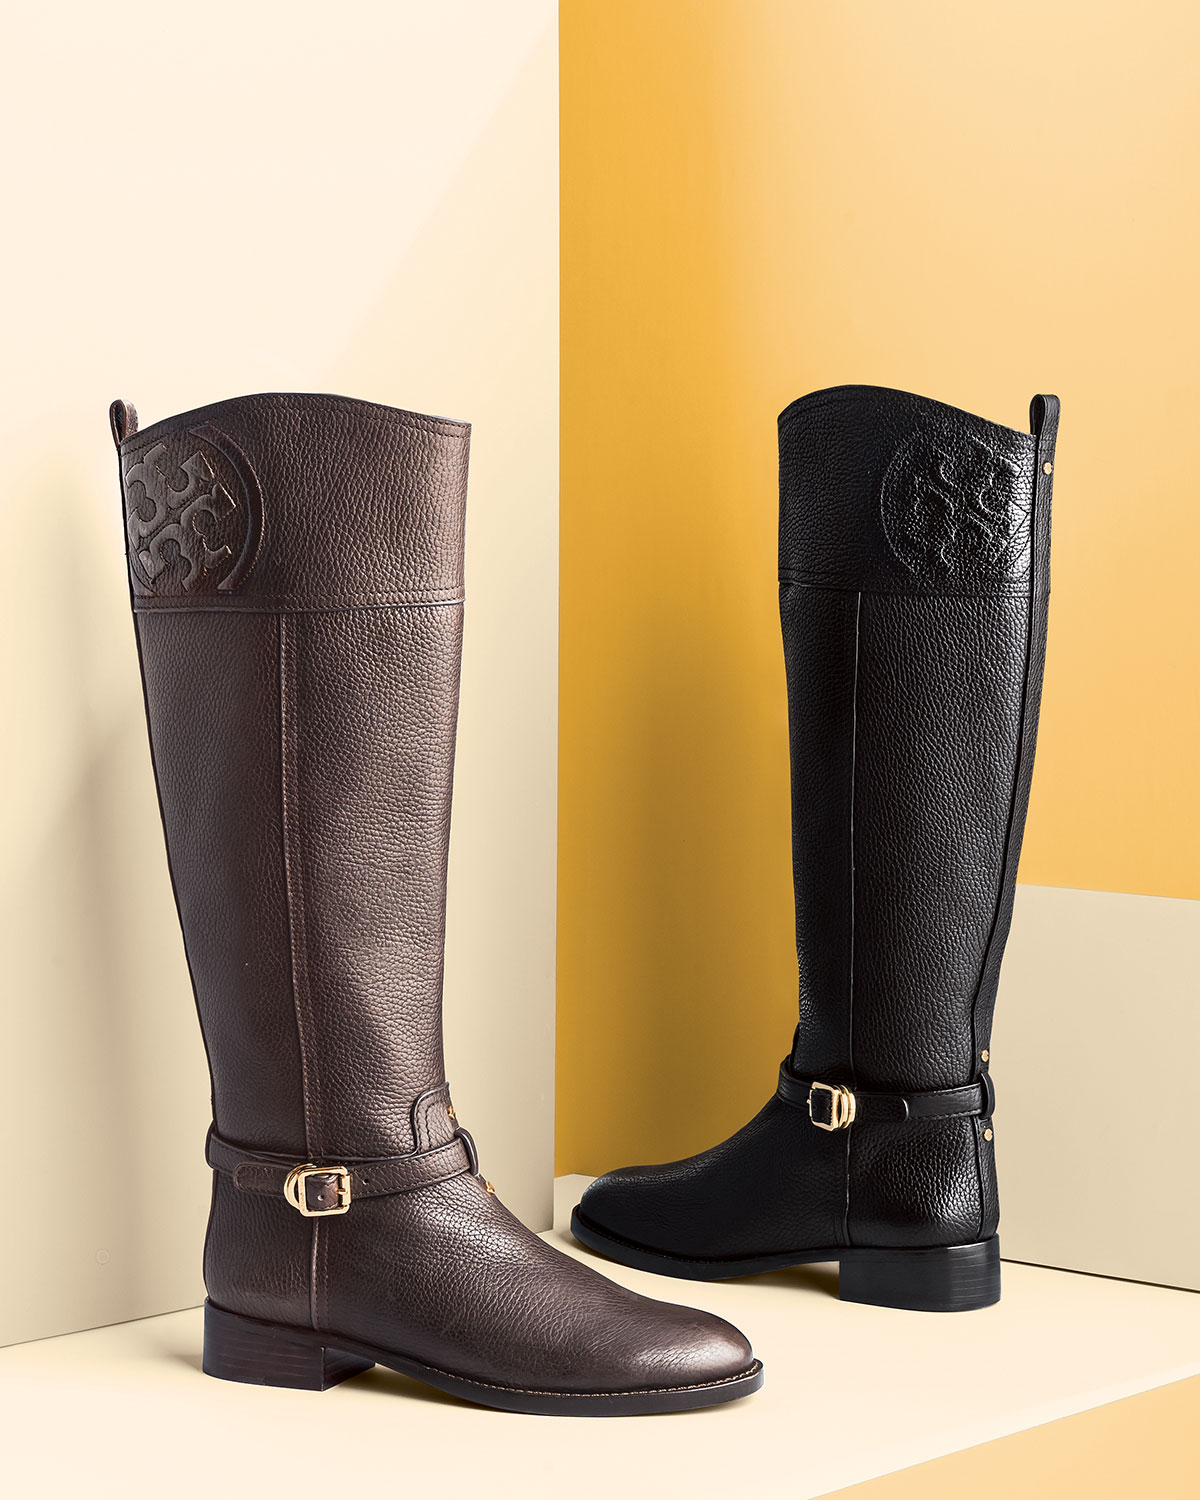 8cc2f2c34c0 netherlands tory burch brown leather riding boots 73b0b 0e6b5